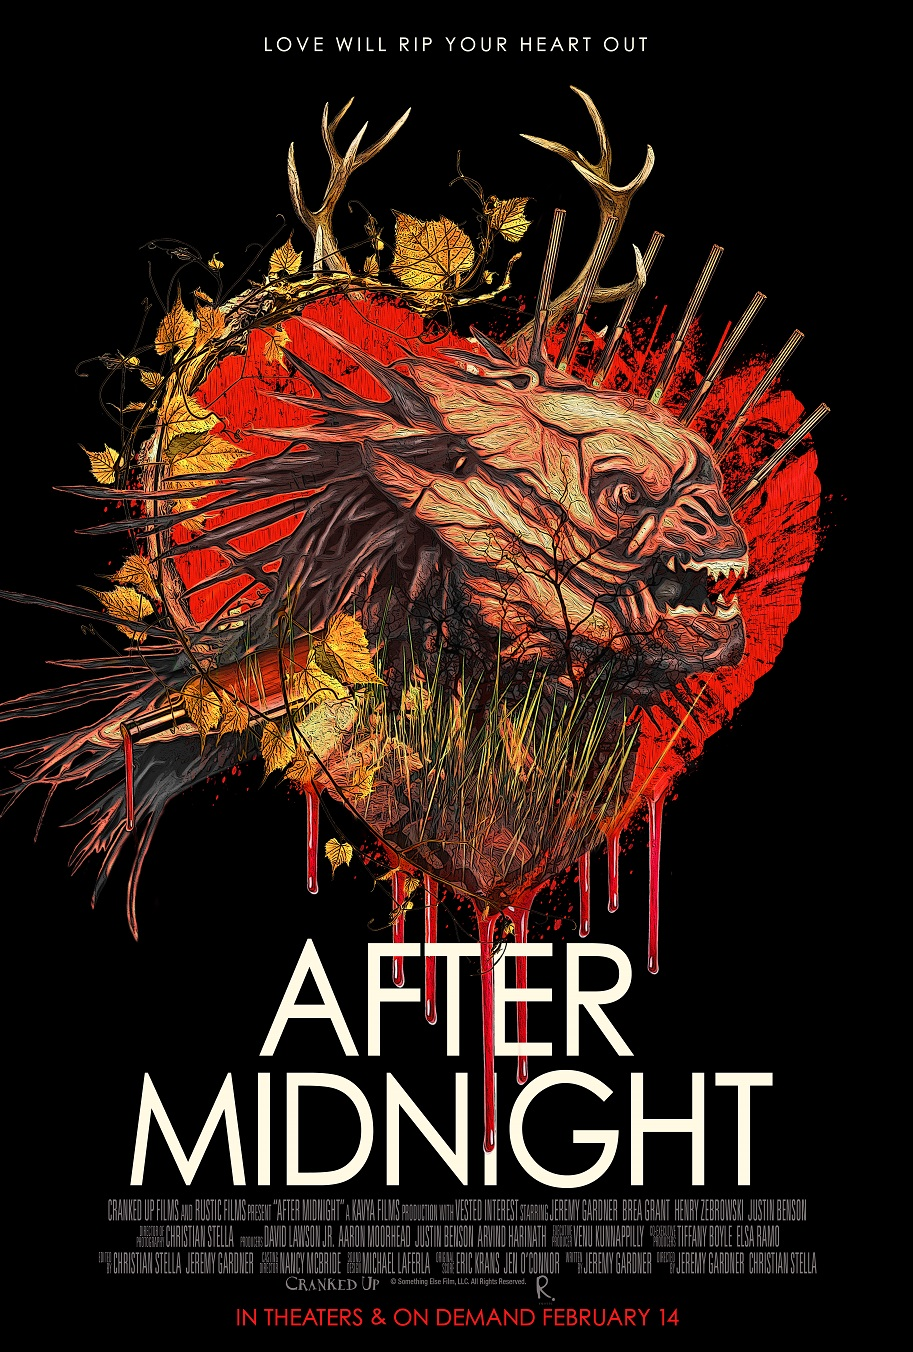 After-Midnight-2019-movie-film-horror-poster-Movies-and-Mania.jpg